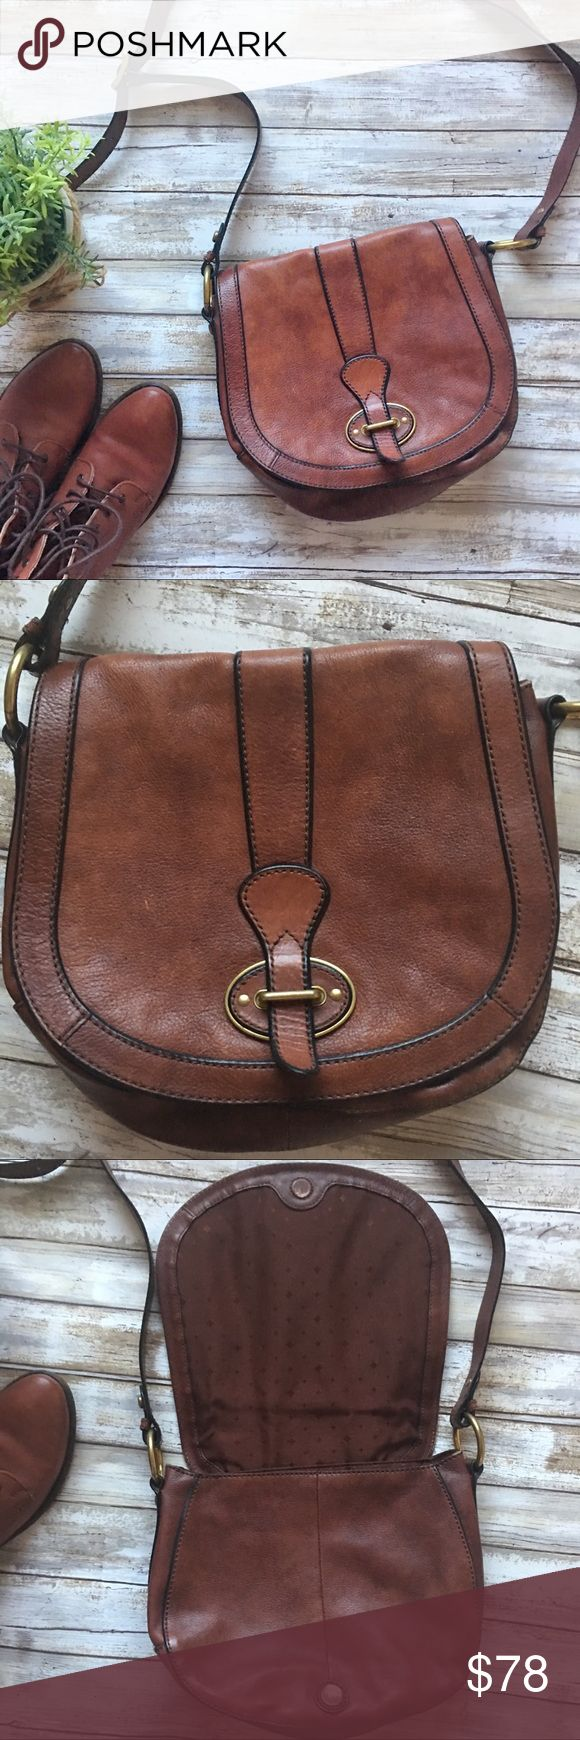 Fossil Cognac Brown Leather crossbody Purse Beautiful brown leather crossbody purse from Fossil! Gently used condition. Some minor marks but not noticeable (refer to pics for condition). Mostly on the magnetic closure there is some fading. Fossil Bags Crossbody Bags